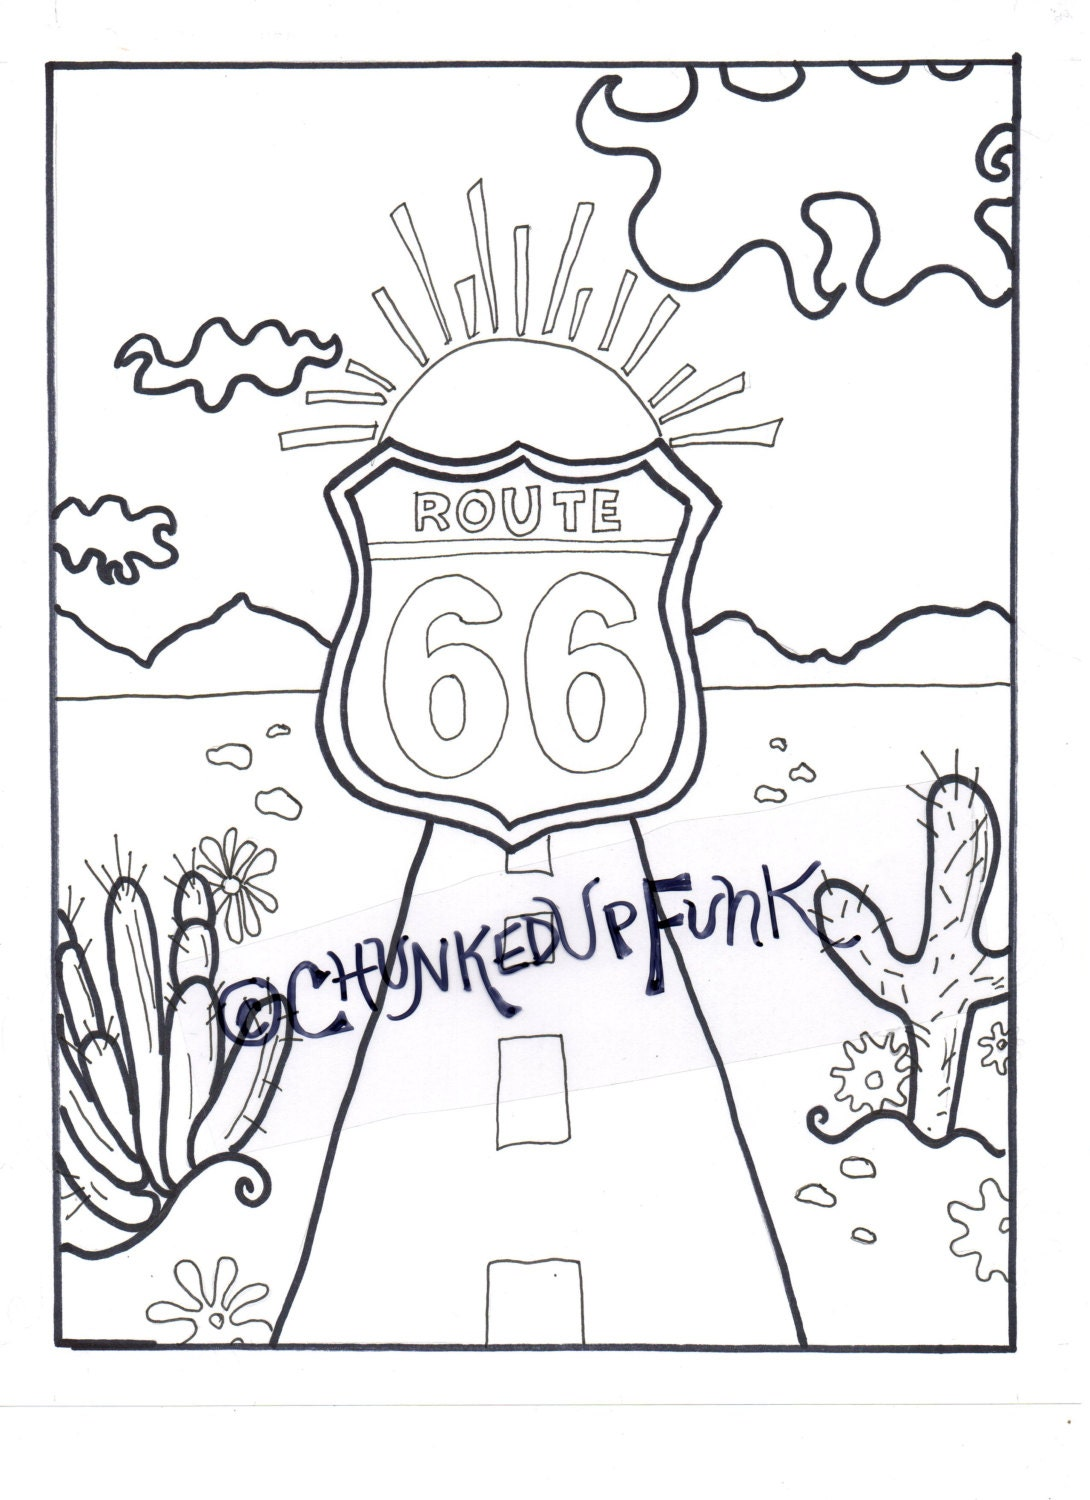 Printable Coloring Page Route 66